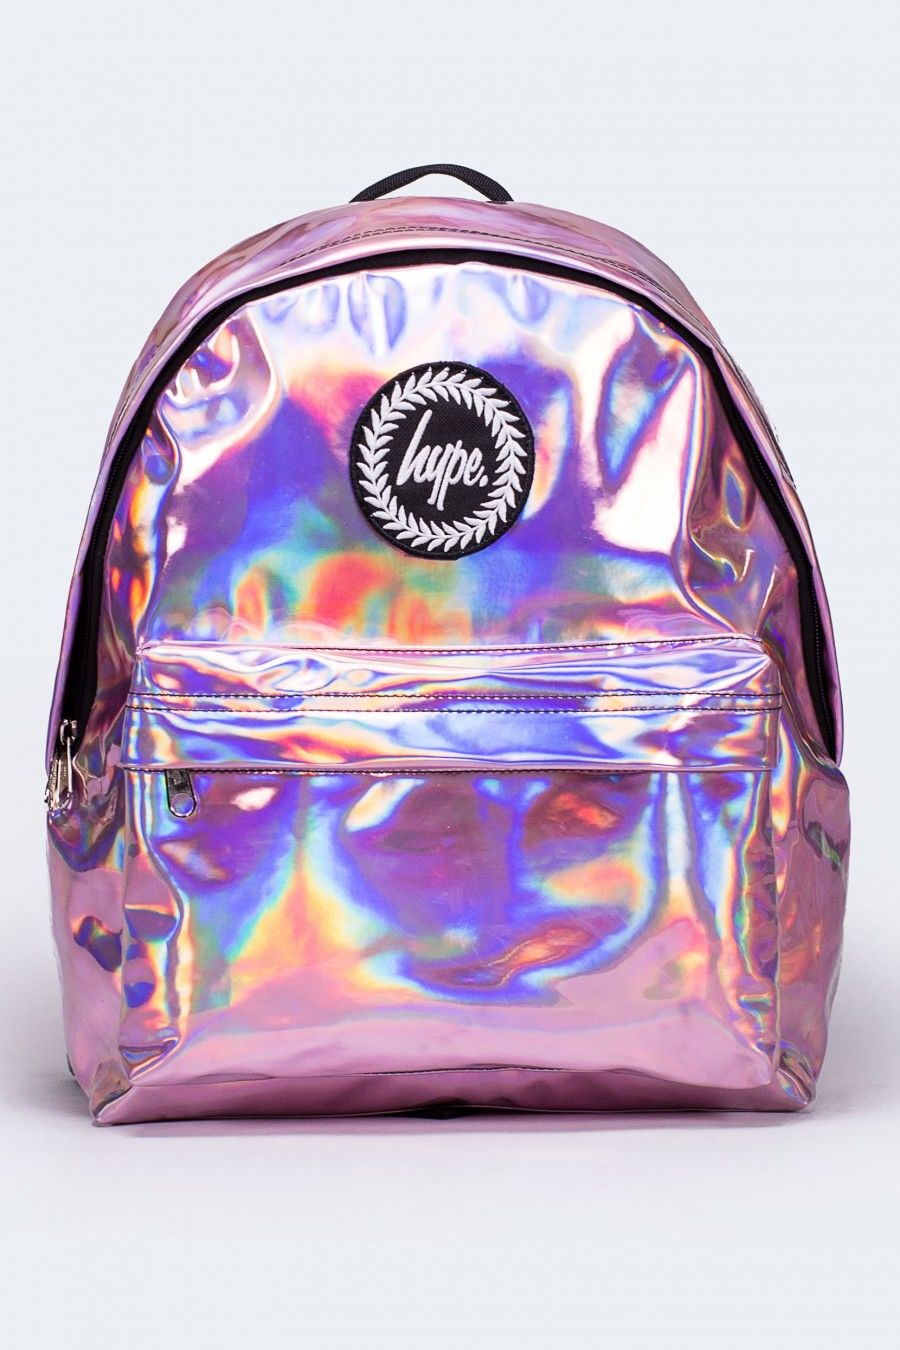 HYPE PINK HOLOGRAPHIC BACKPACK | Girly stuff | Pinterest ...